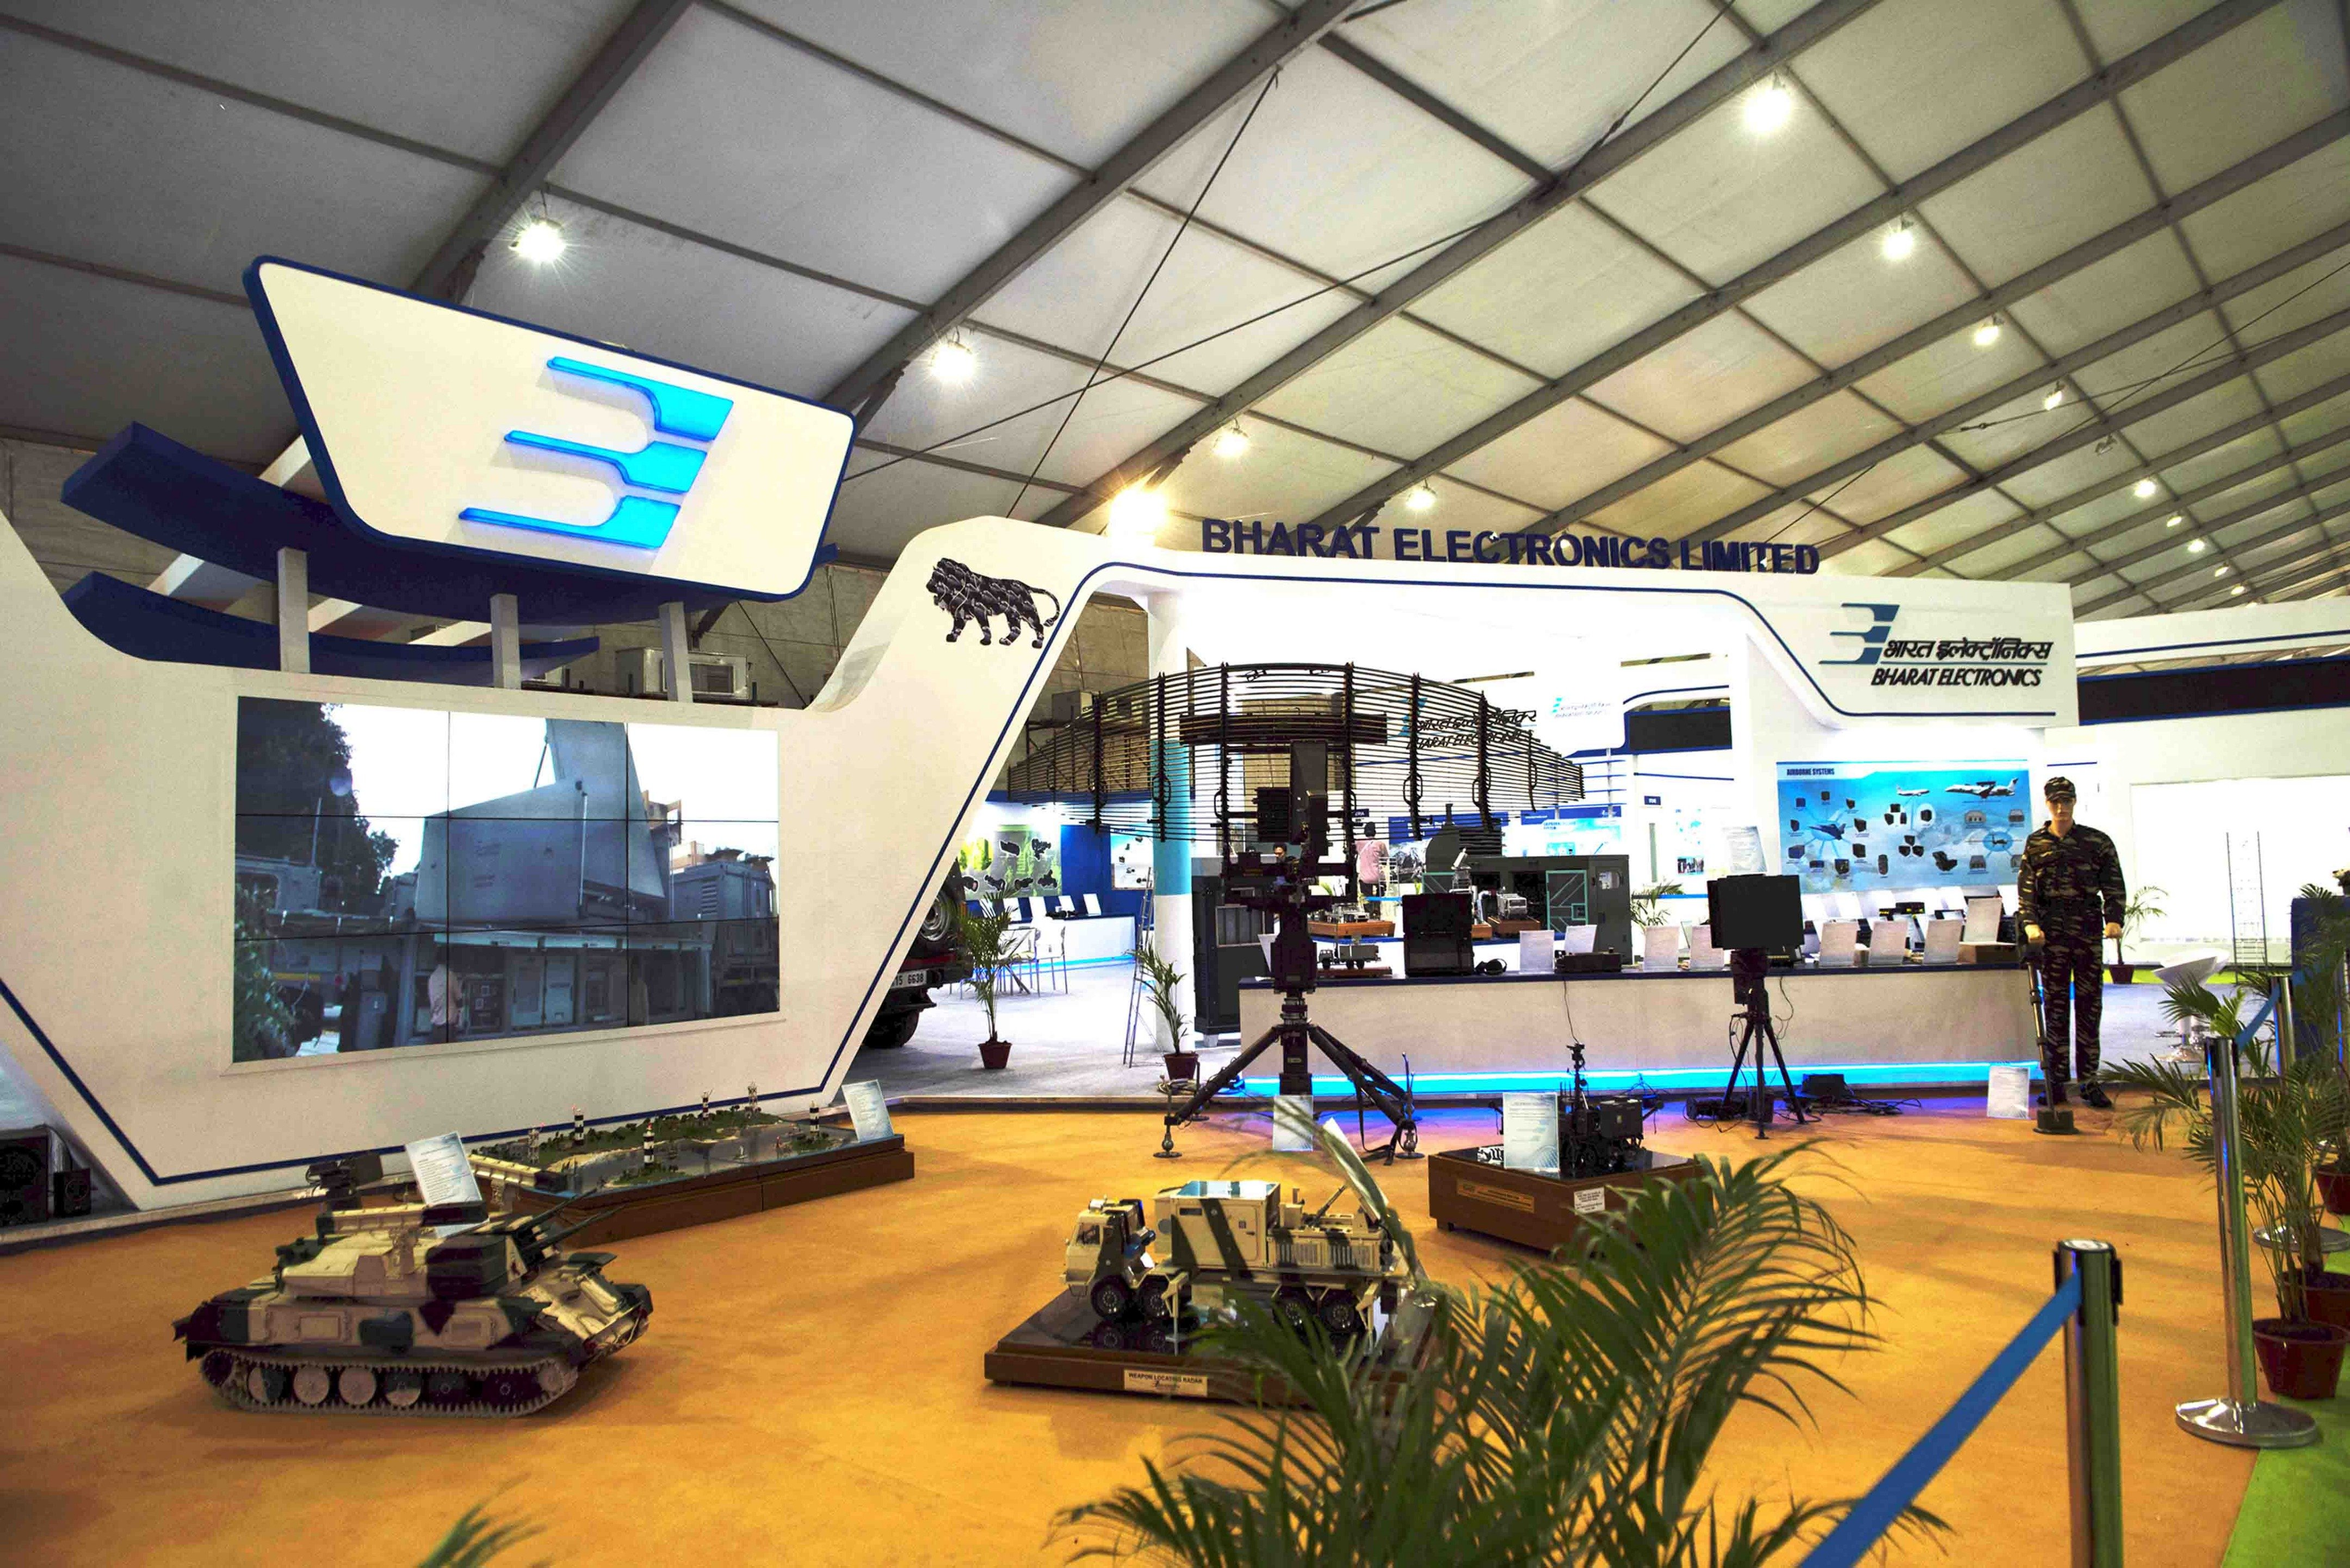 Exhibition Stand Definition : Bharat electronics limited def expo exhibition stand build by xs